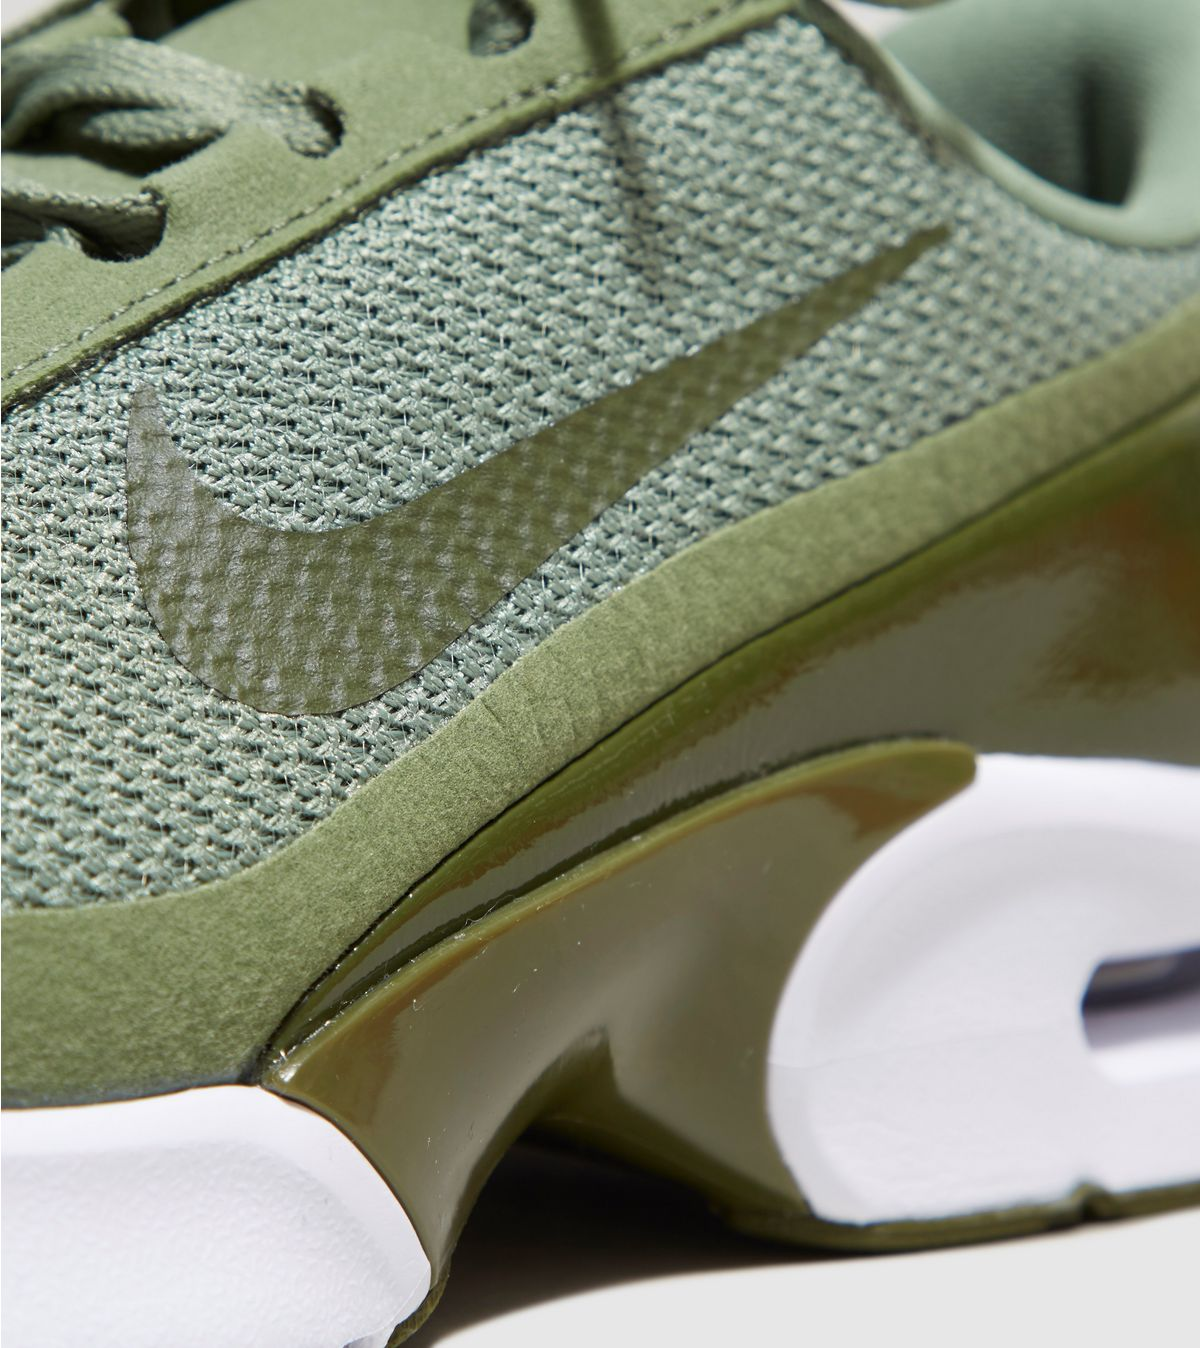 official photos fb60b 95bf8 Latest Nike Air Max Selection at size? - size? blog